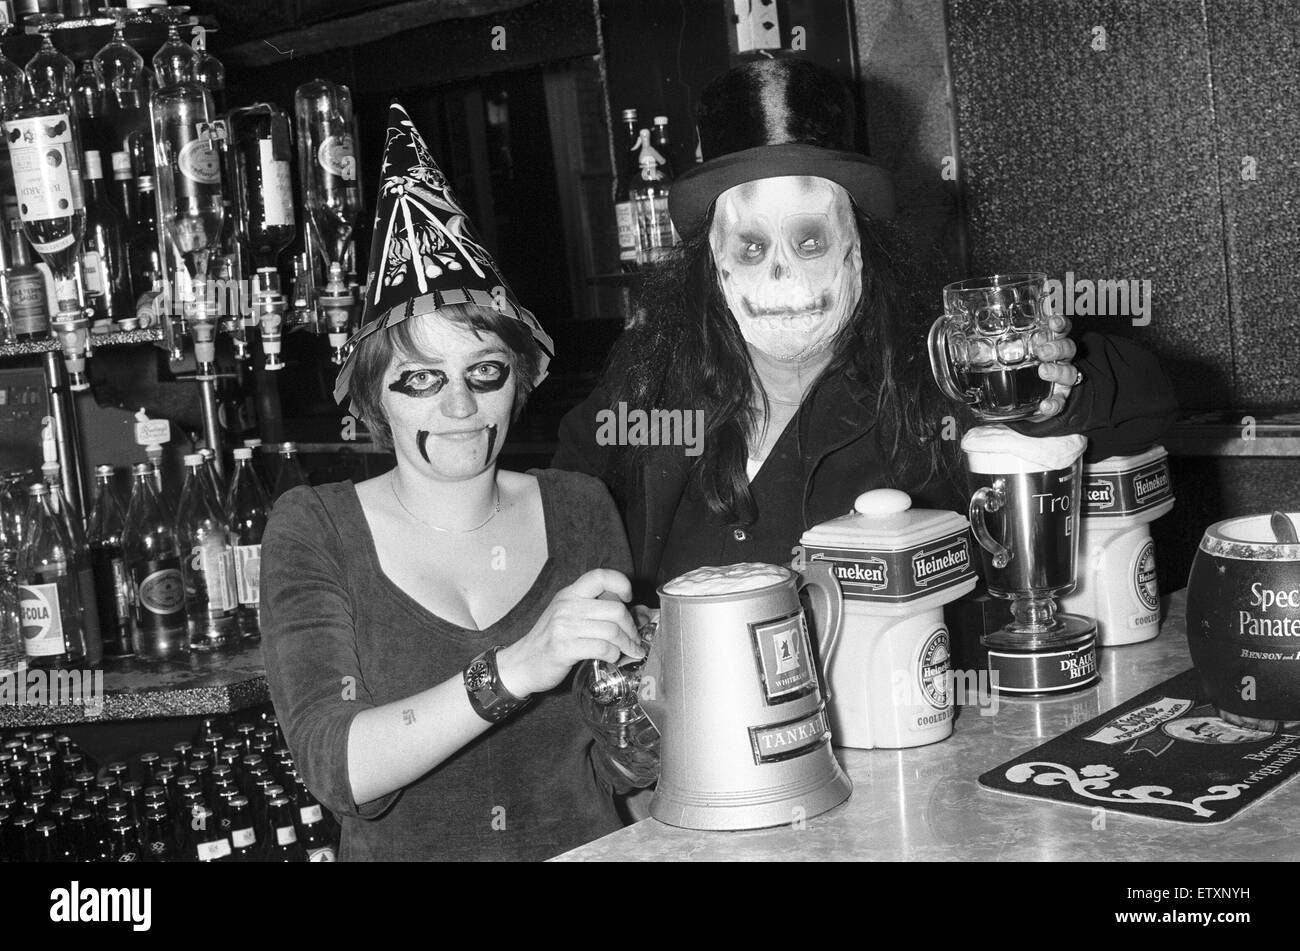 Halloween at the Crown Leamington pub. 30th October 1979 - Stock Image